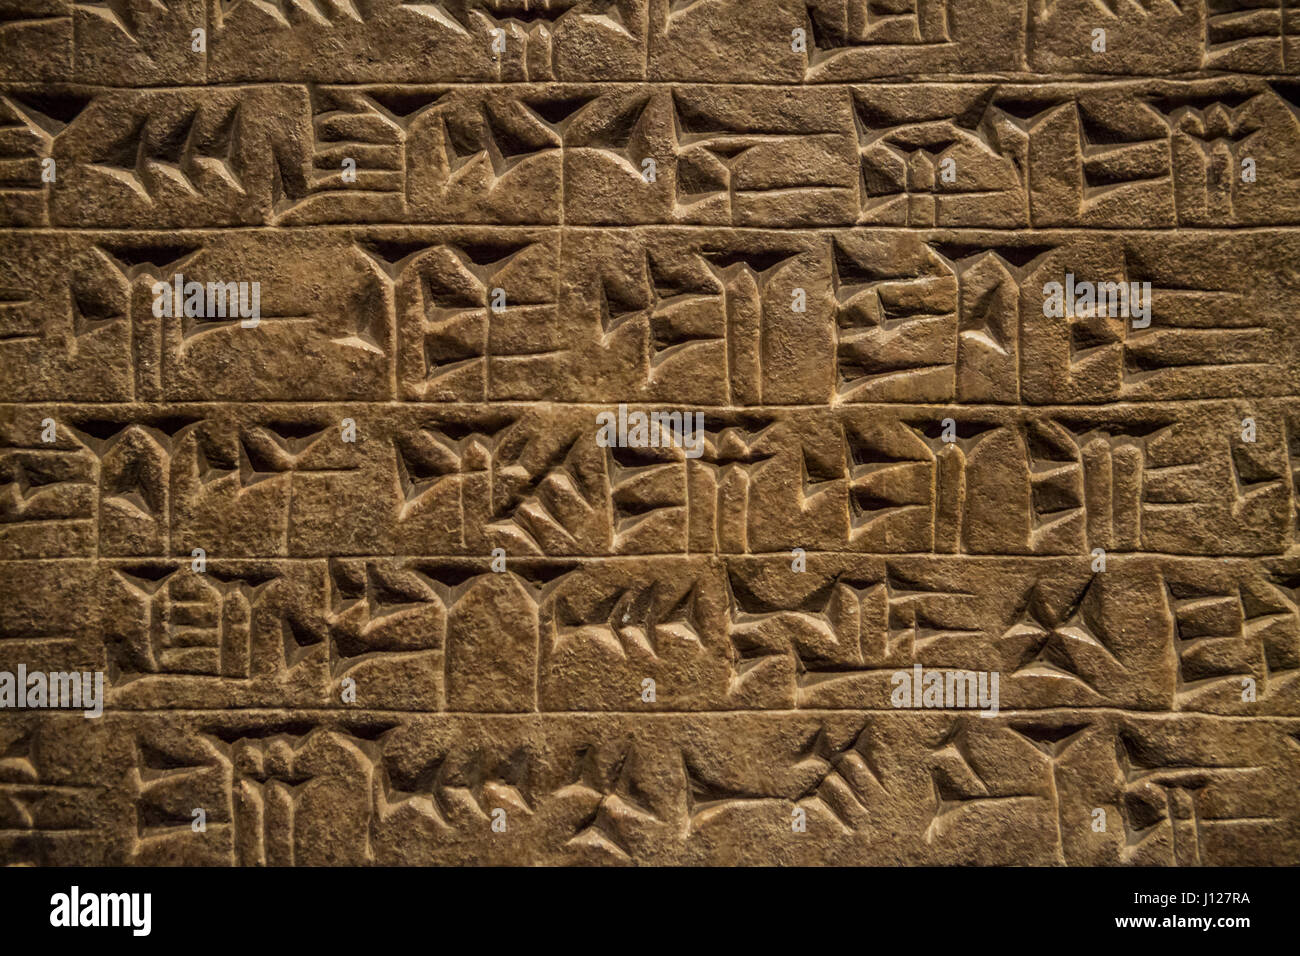 why is cuneiform important